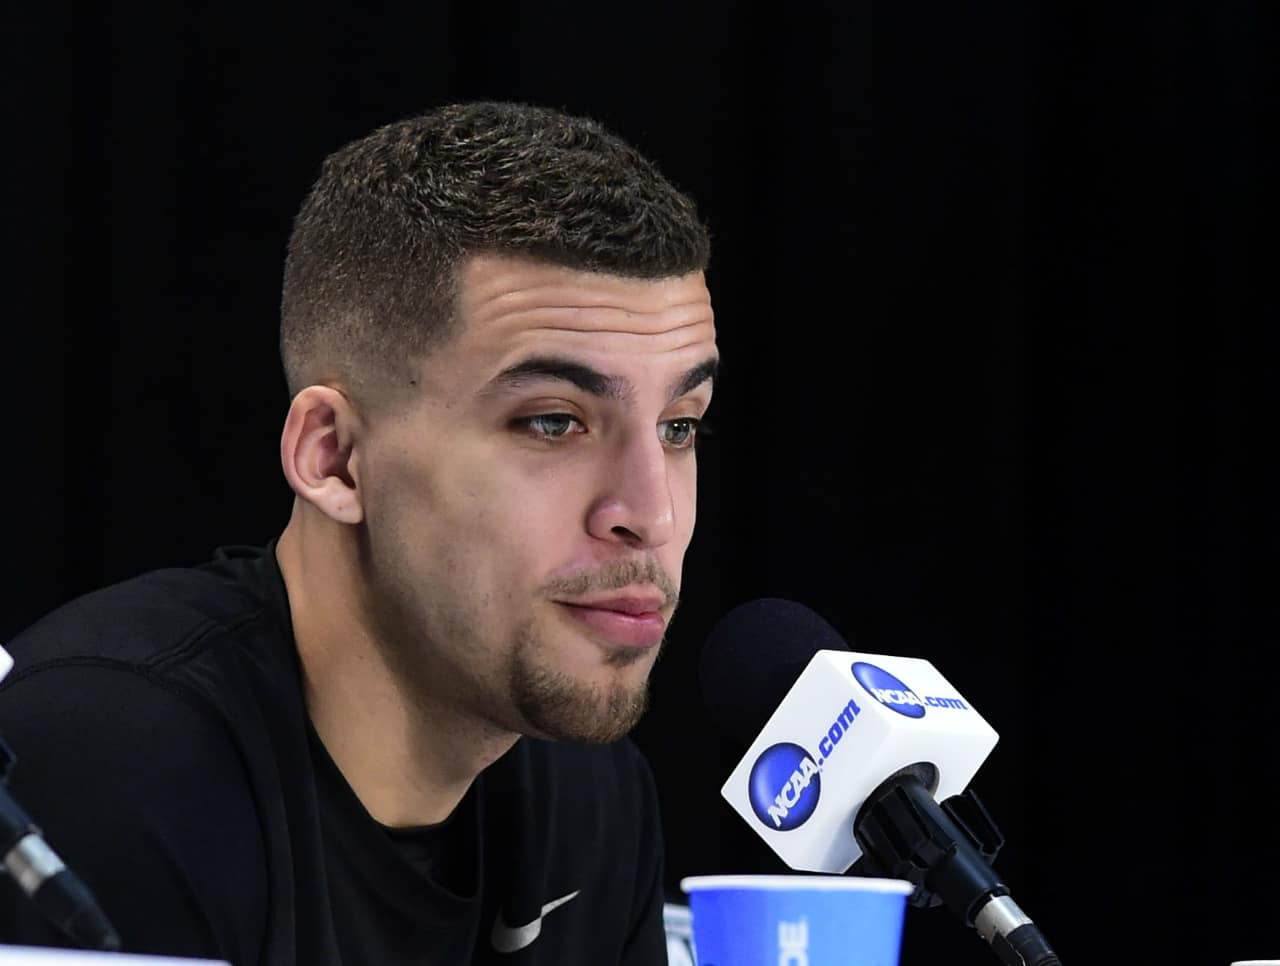 Apr 3, 2014; Arlington, TX, USA; Florida Gators guard Scottie Wilbekin (5) during a press conference before the semifinals of the Final Four in the 2014 NCAA Mens Division I Championship tournament at AT&T Stadium. Photo by: Bob Donnan-USA TODAY Sports